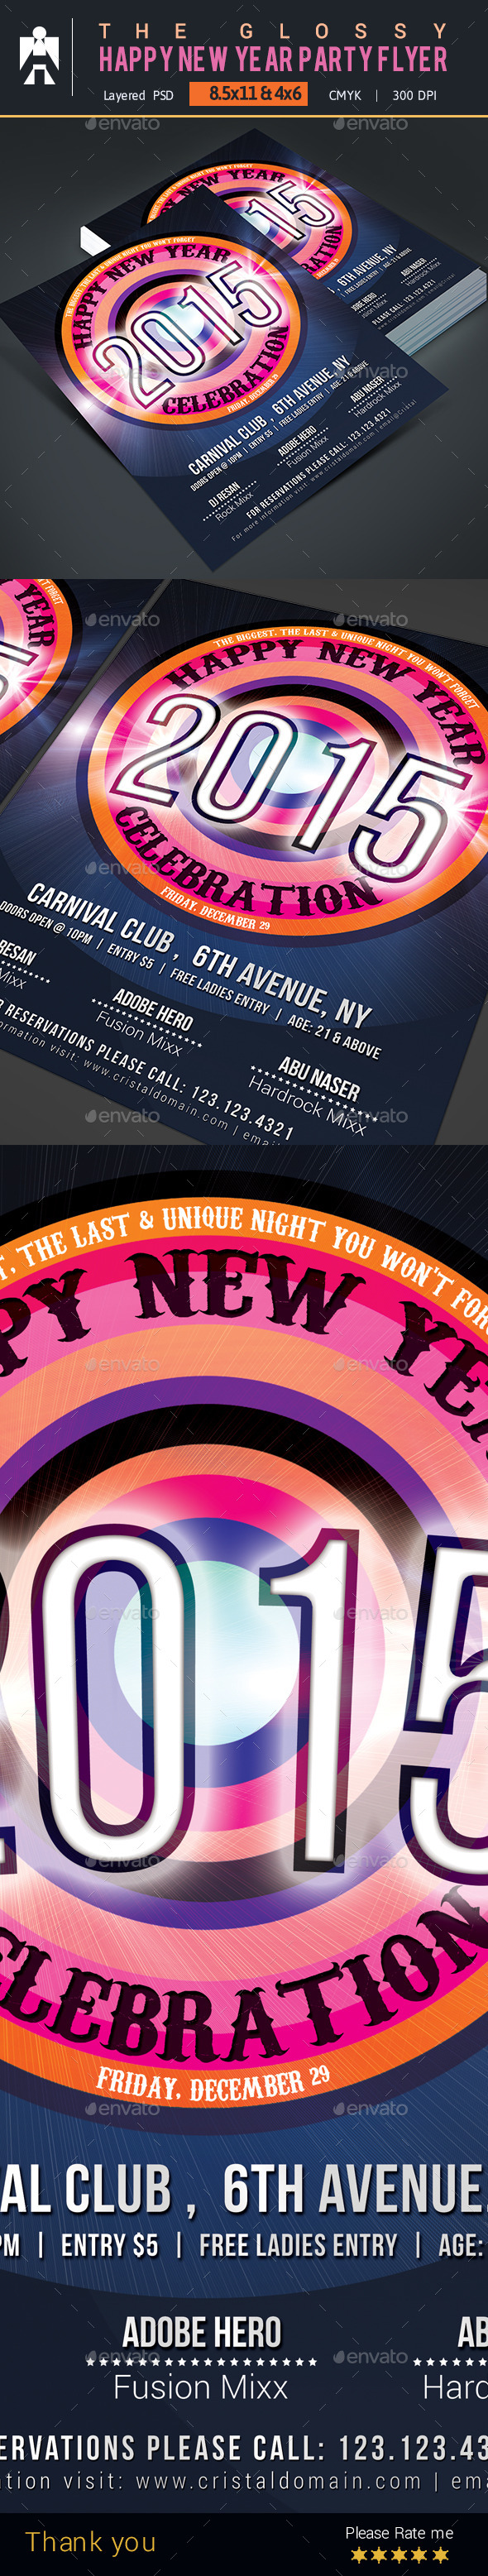 Happy New Year Party Flyer - Events Flyers